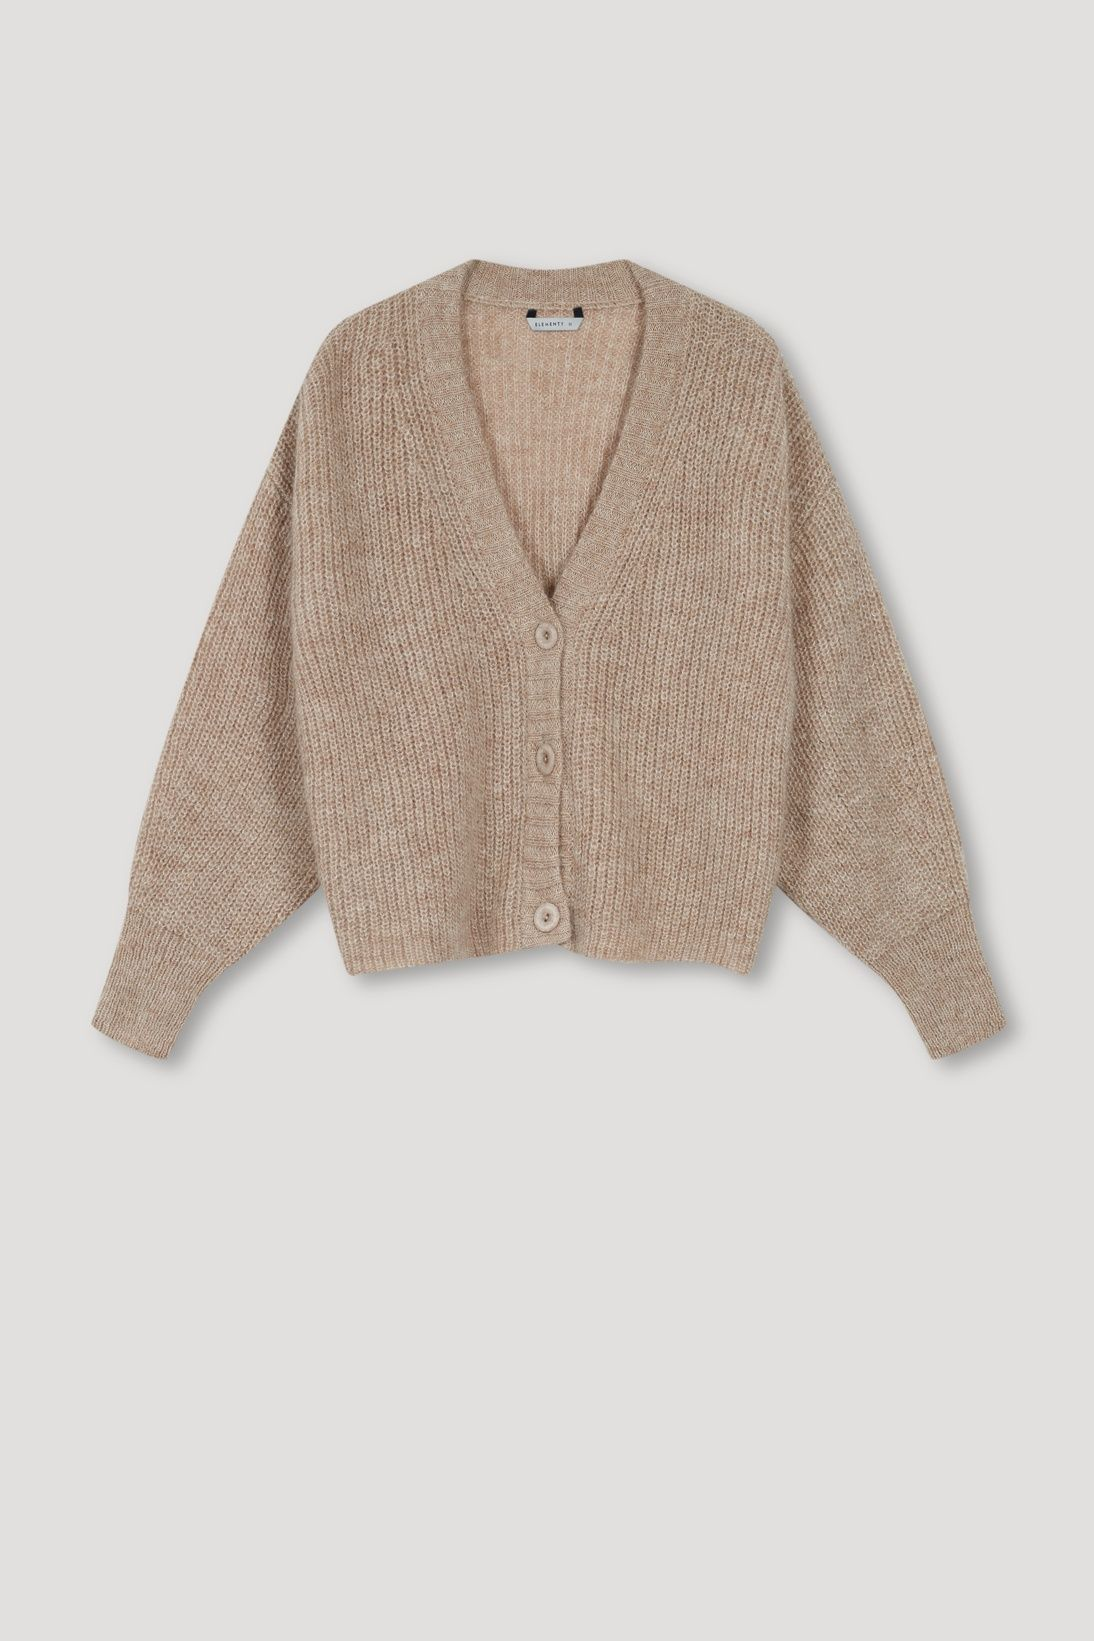 PICO TAUPE CARDIGAN - Les Goodies